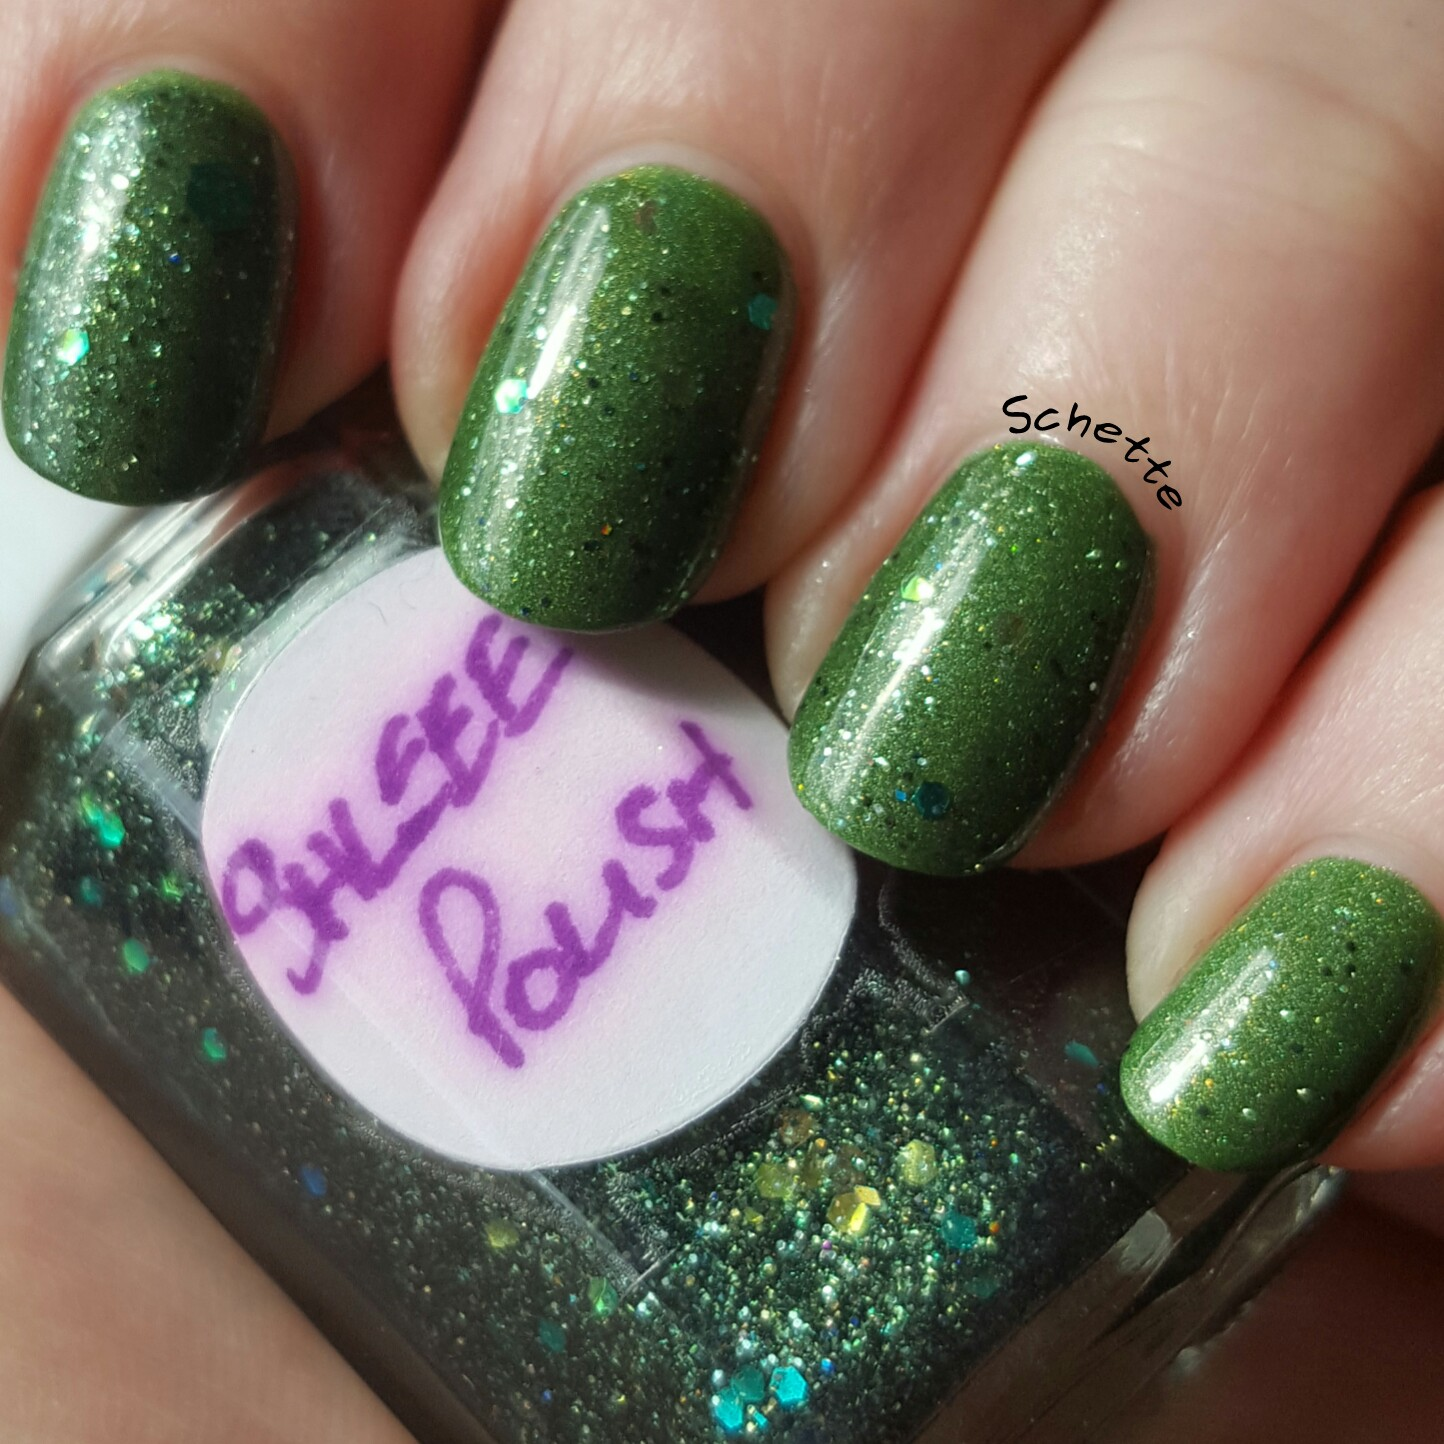 Shleee Polish : Mary Jane,Holland, To serve Mars